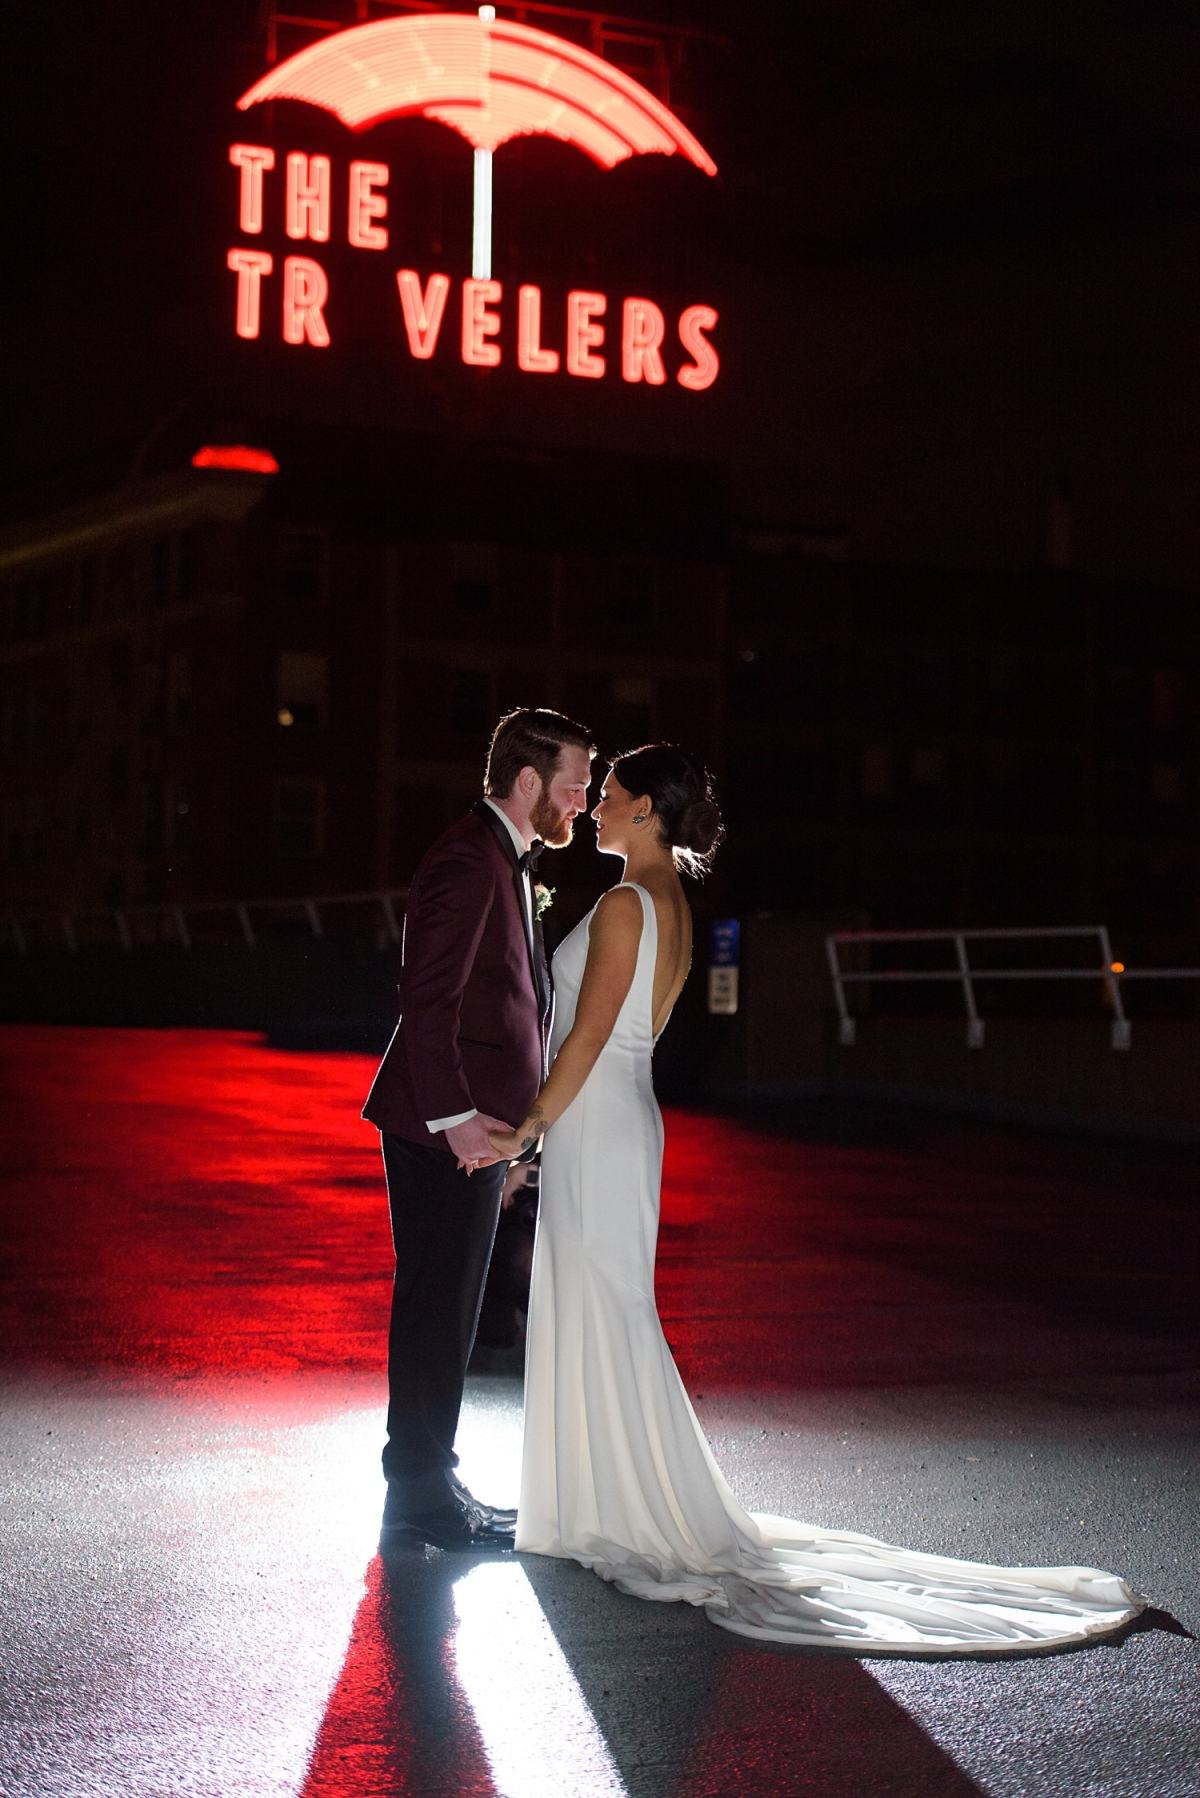 des moines travelers sign and bride and groom at night